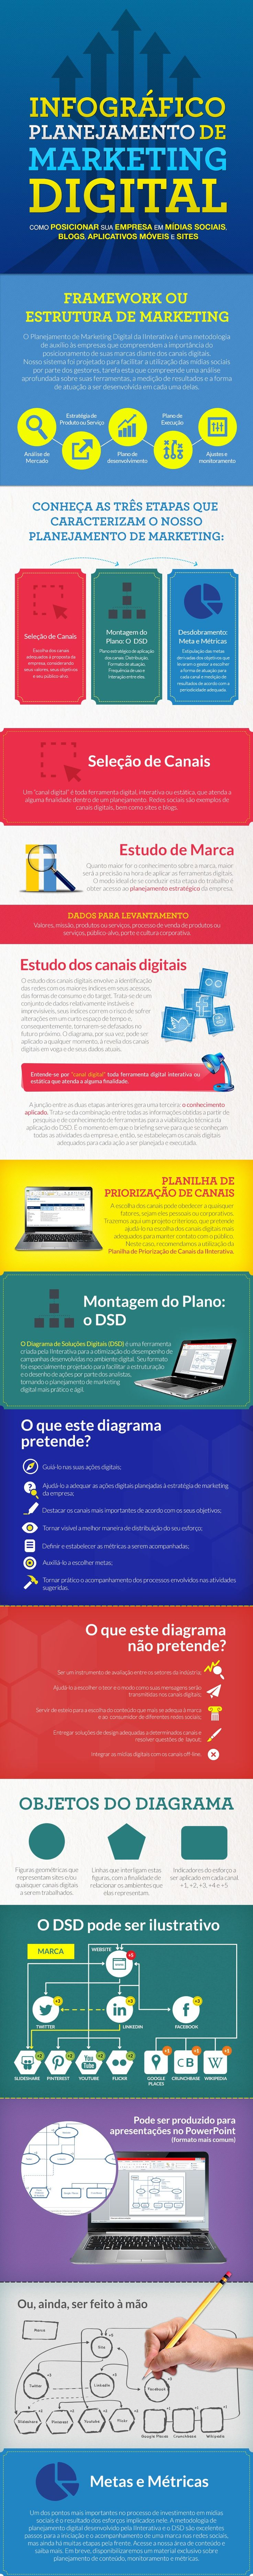 Infográfico: Plano de Marketing Digital | Fonte: IInterativa